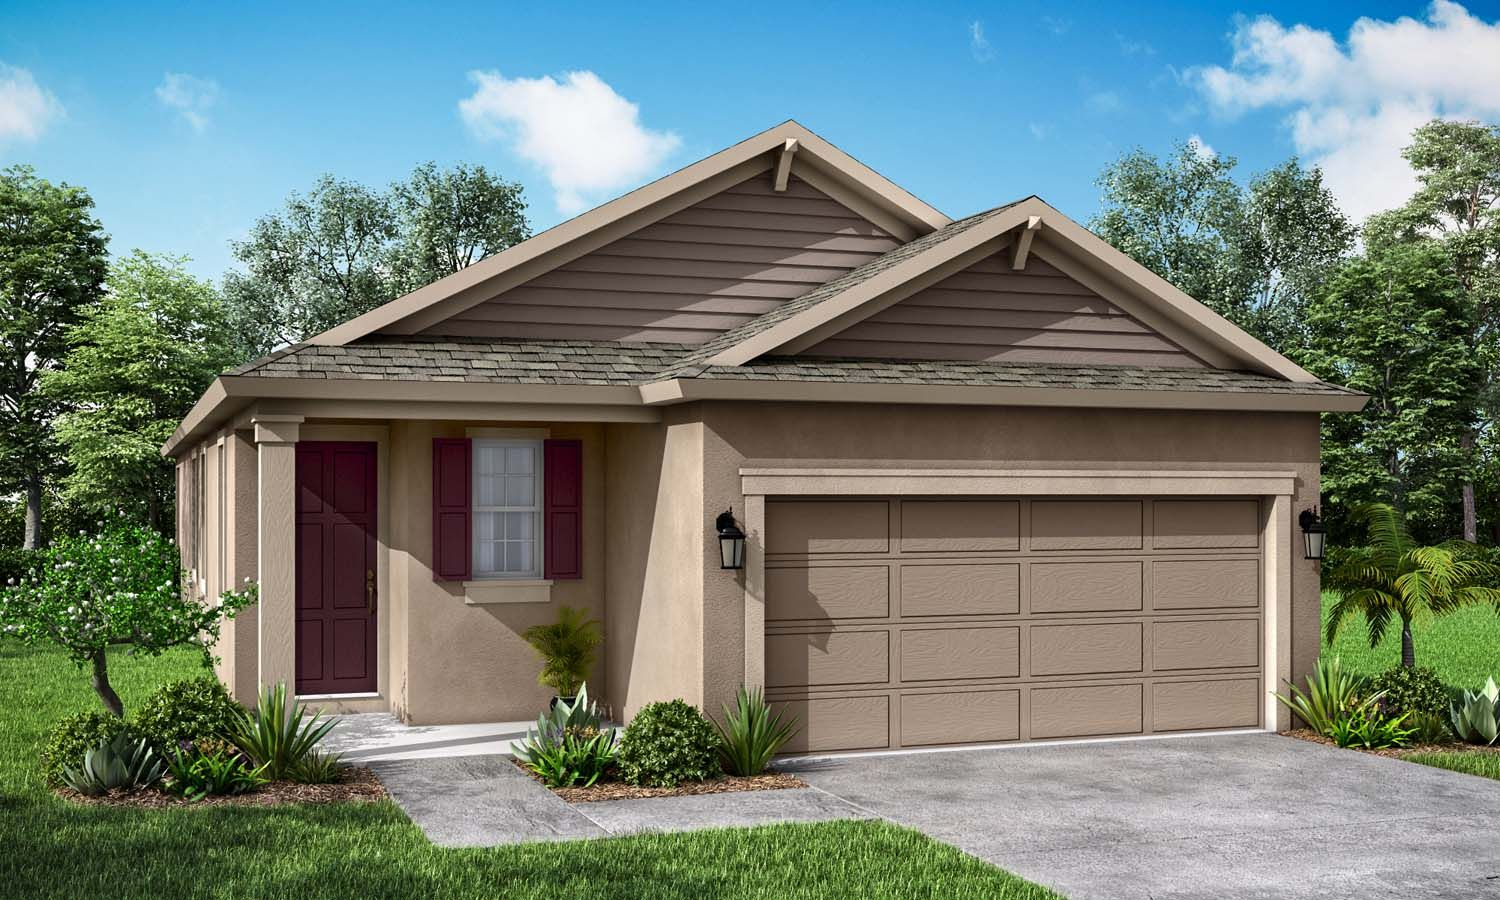 Cypress Traditional elevation available only at BridgeWater in Lakeland FL by William Ryan Homes ...:Cypress - Traditional Elevation - Available Only at BridgeWater